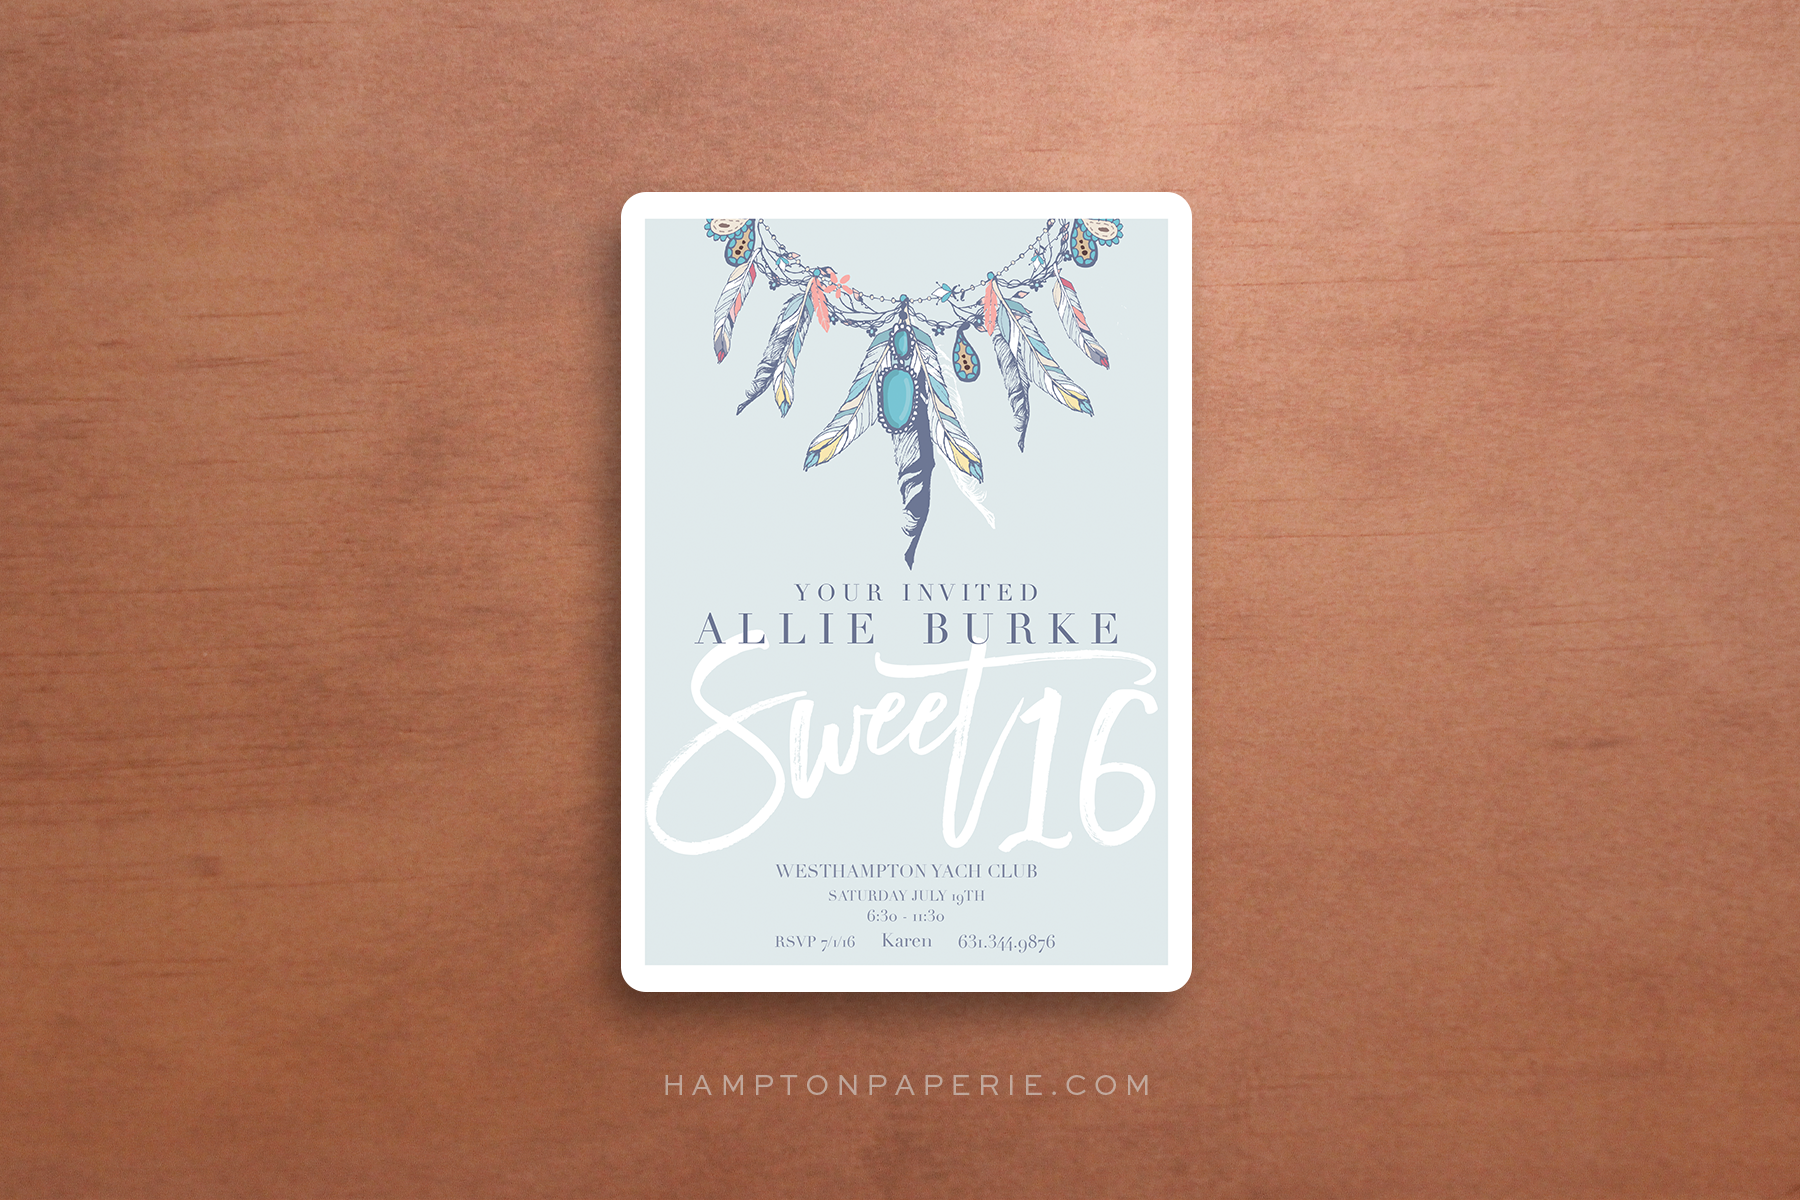 HAMPTON PAPERIE – Sweet 16 Invitation Card